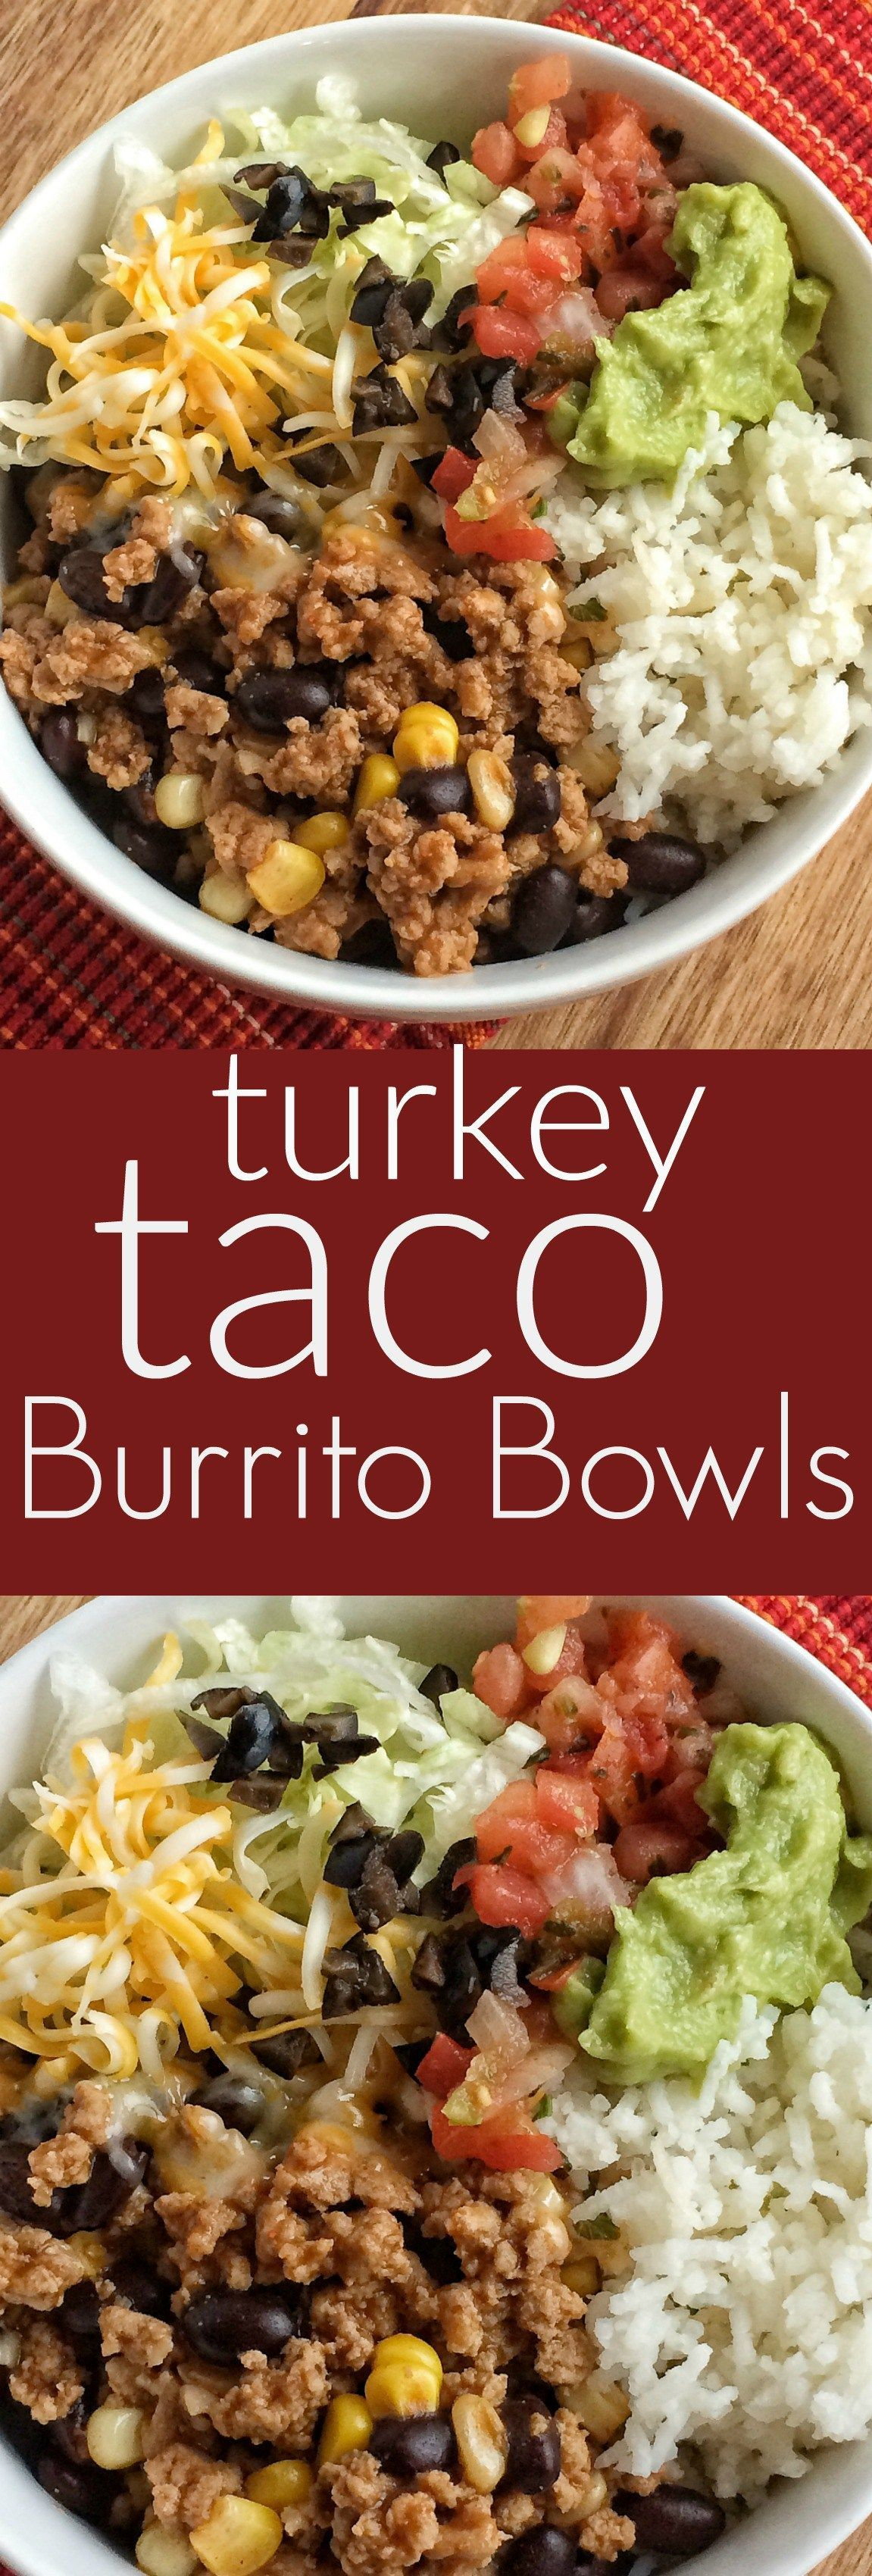 Taco Burrito Bowls Turkey taco meat with beans and corn simmers on the stove top. Make a burrito bowl with rice and taco toppings!Turkey taco meat with beans and corn simmers on the stove top. Make a burrito bowl with rice and taco toppings!